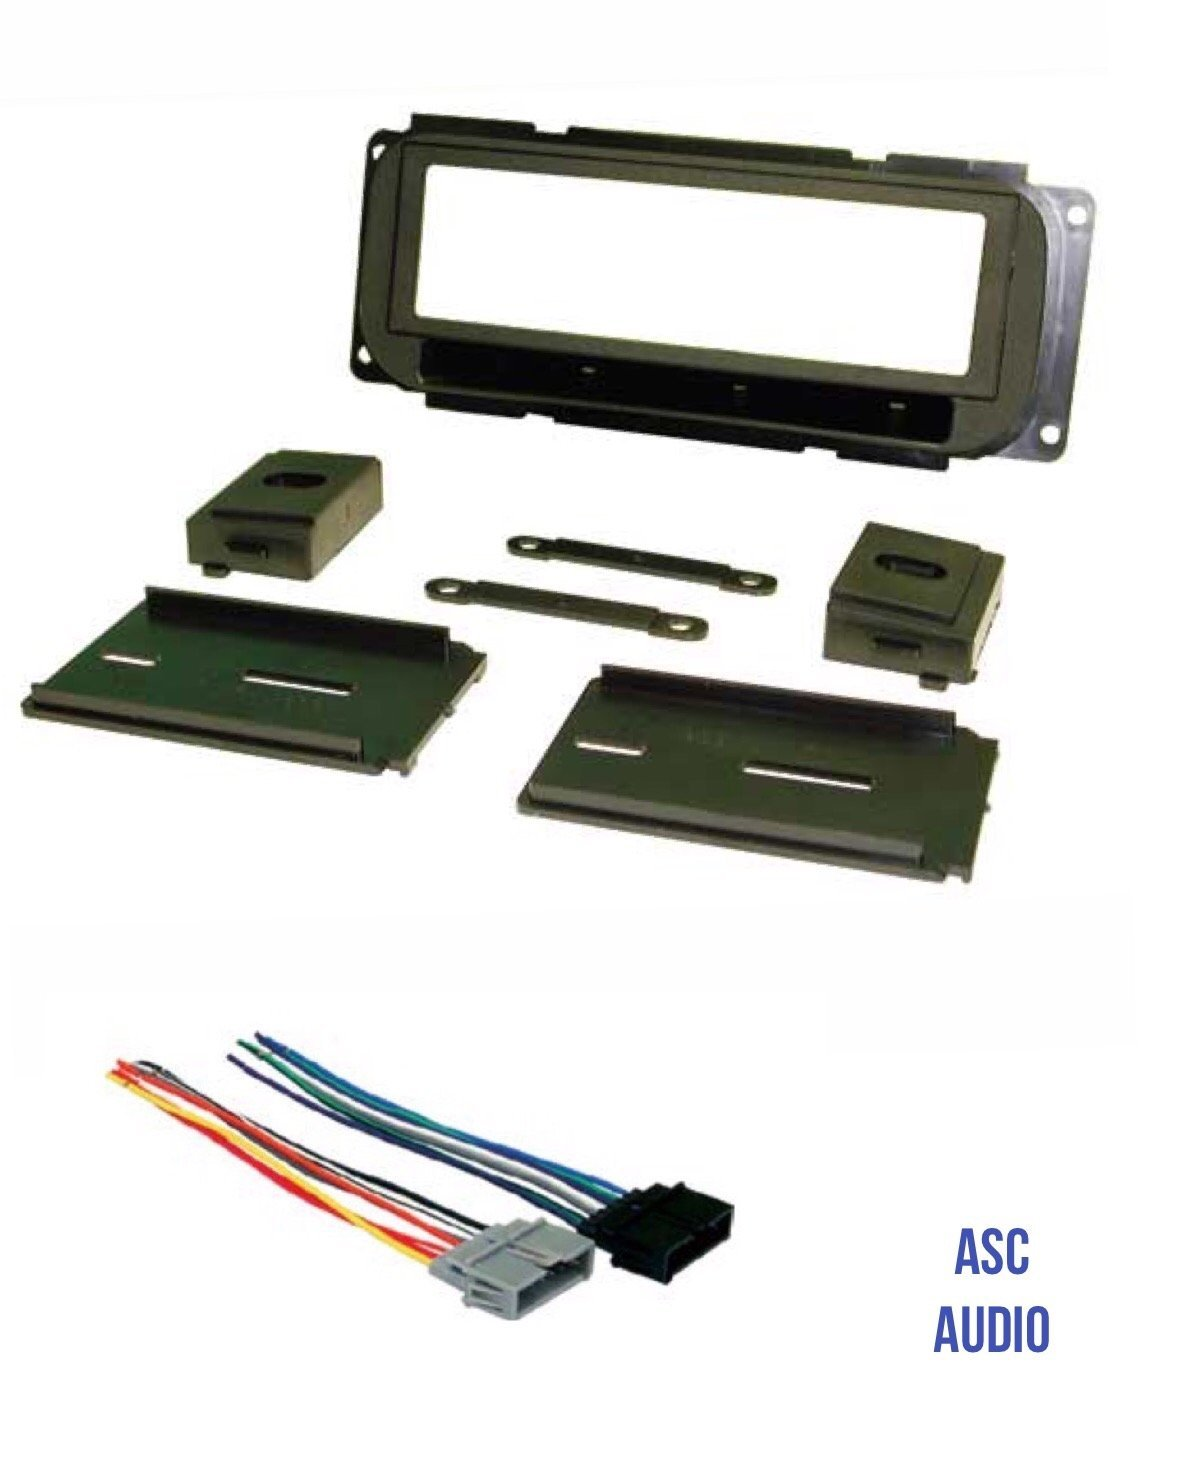 hight resolution of get quotations asc audio car stereo dash kit and wire harness to install a single din radio for